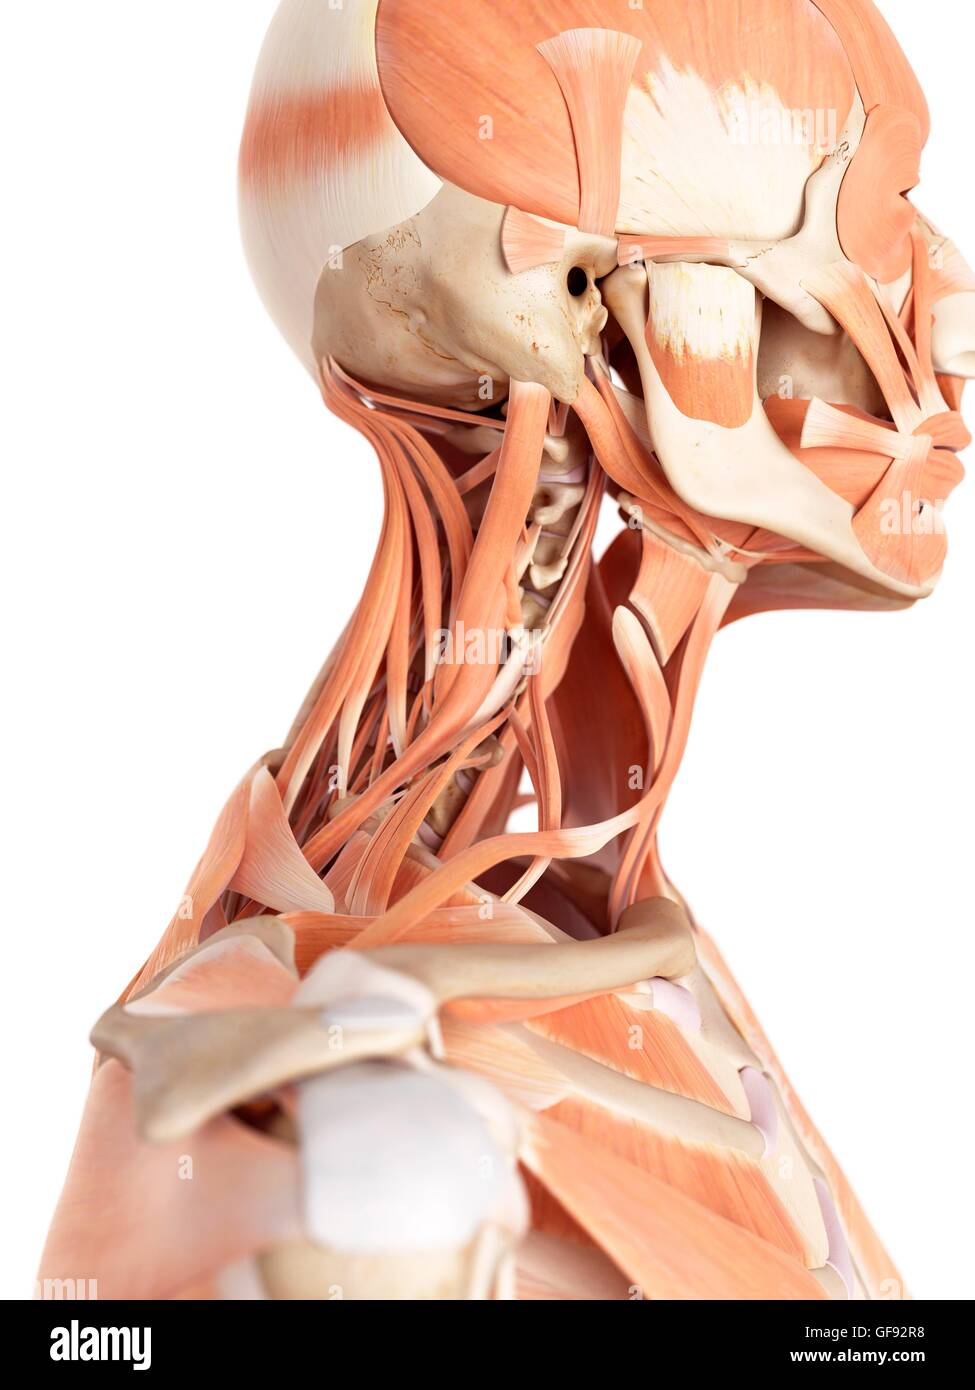 Human Facial Muscles Stock Photos & Human Facial Muscles Stock ...